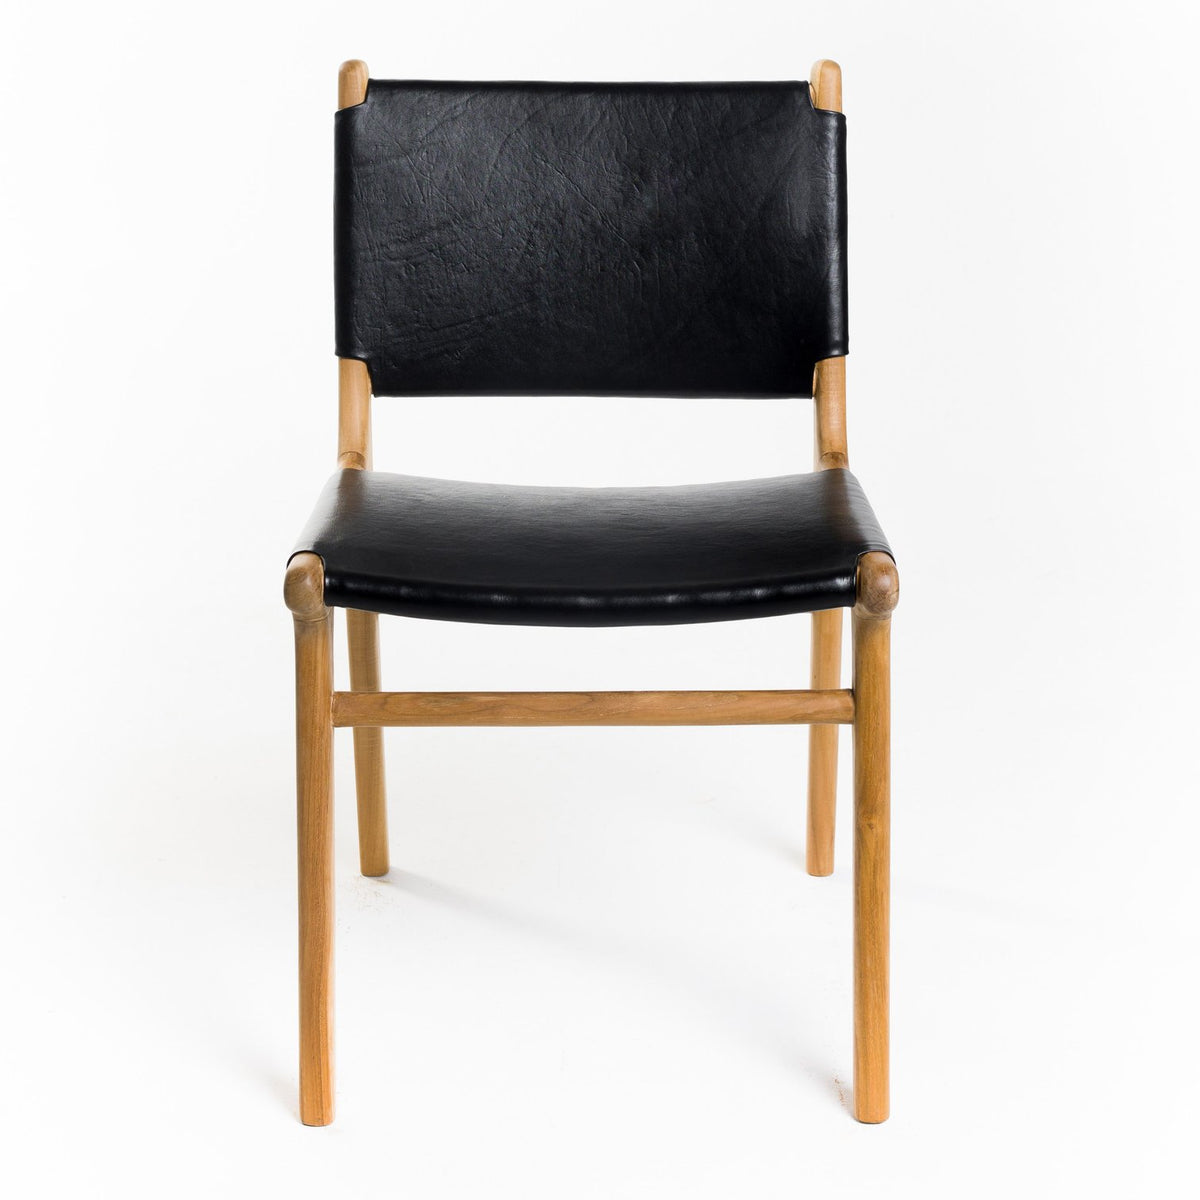 Spensley Dining Chair - Black